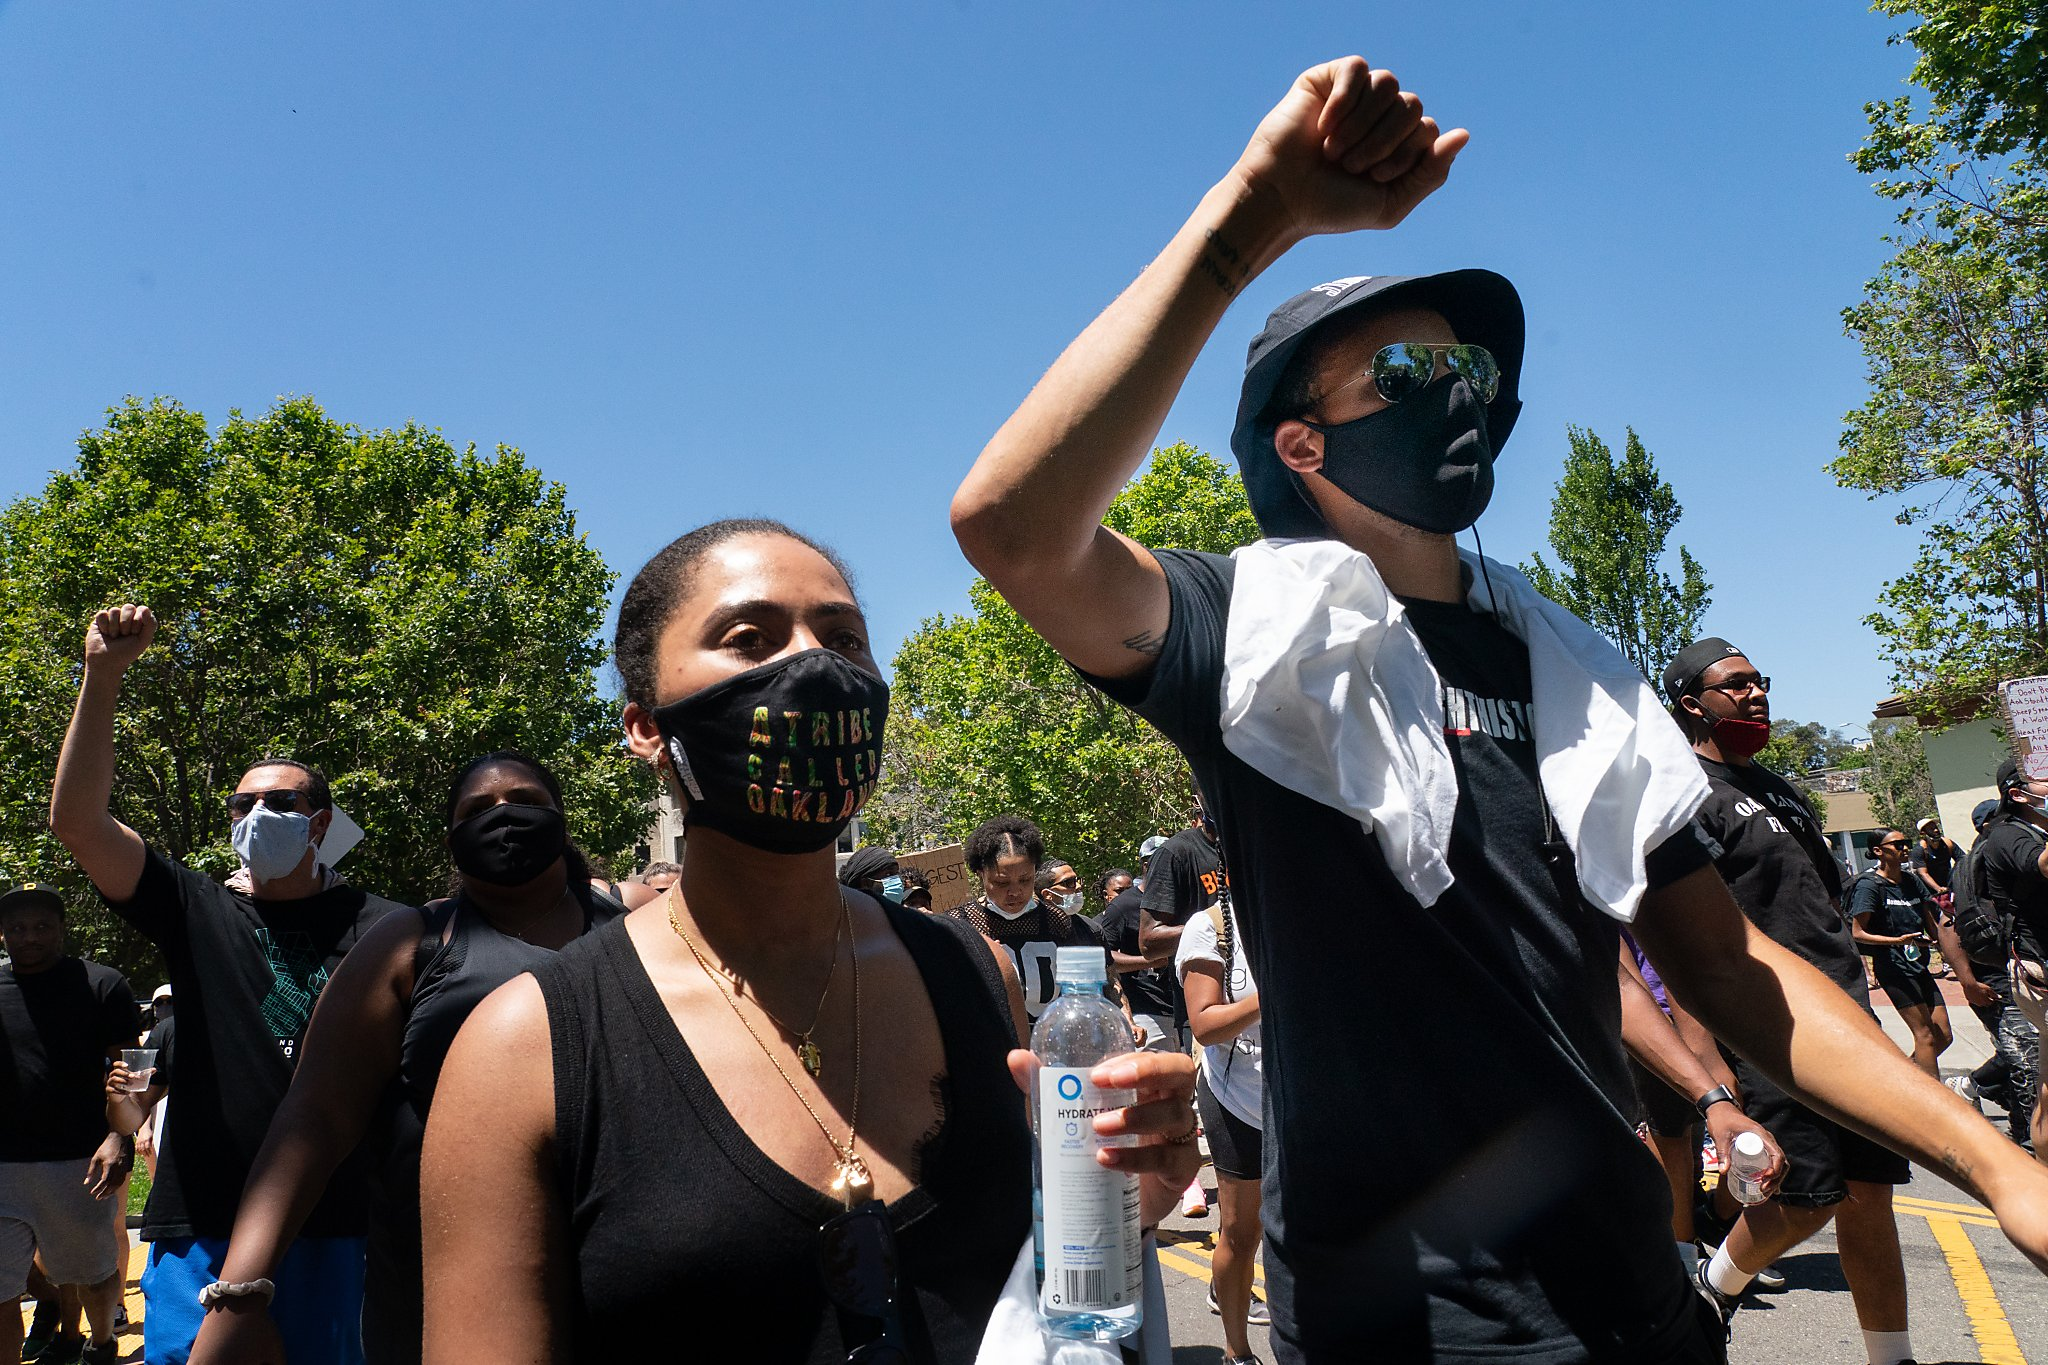 Stephen Curry, Klay Thompson attend Oakland protest led by Juan Toscano-Anderson